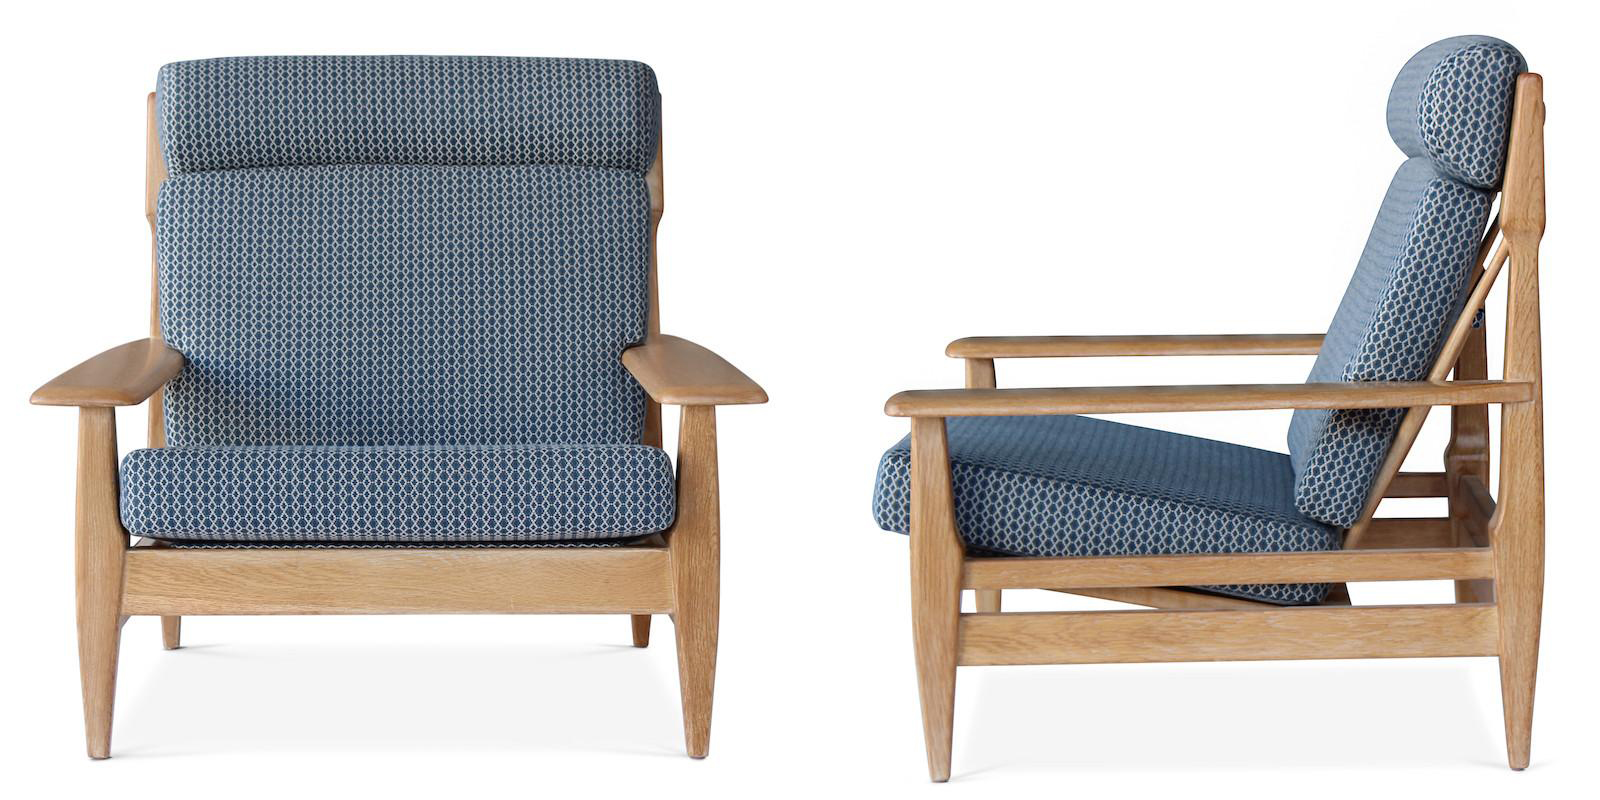 formosa.armchair.chair.furniture.wood.midcentury.modern.brazilian.design.peter.dunham.hollywood.at.home.front_1024x1024.jpg